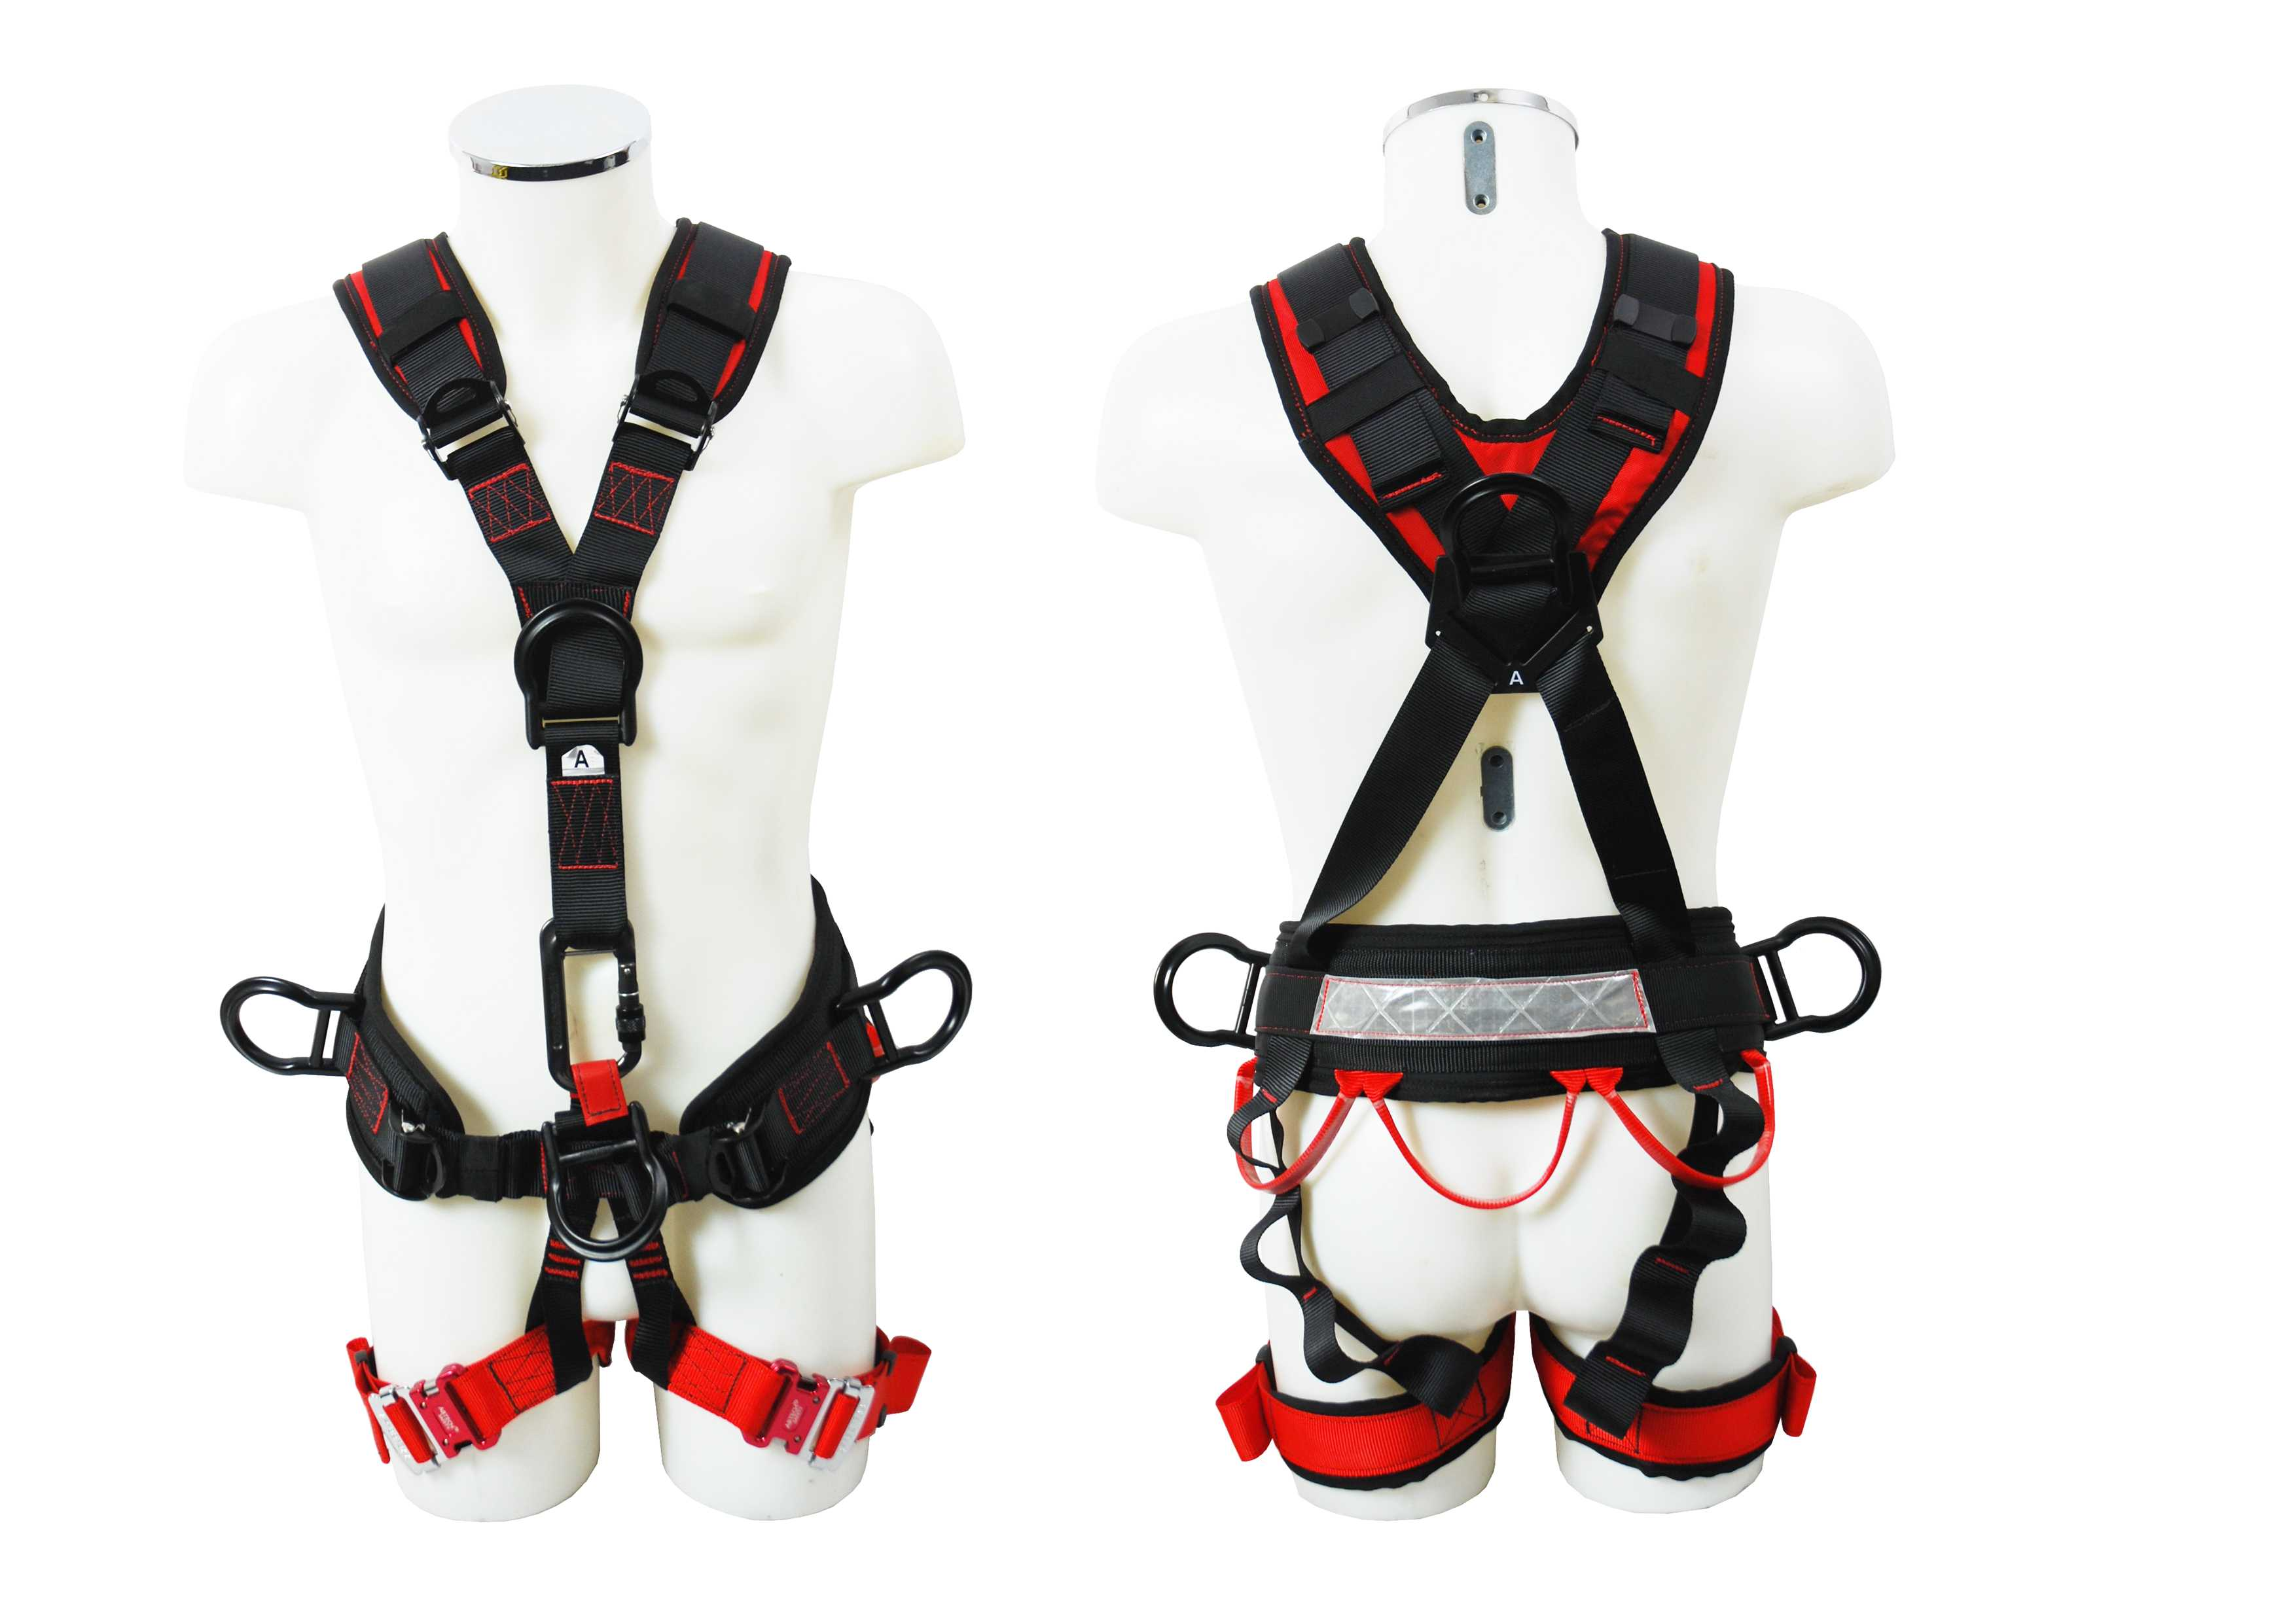 Access Pro Safety Harness ABPRO